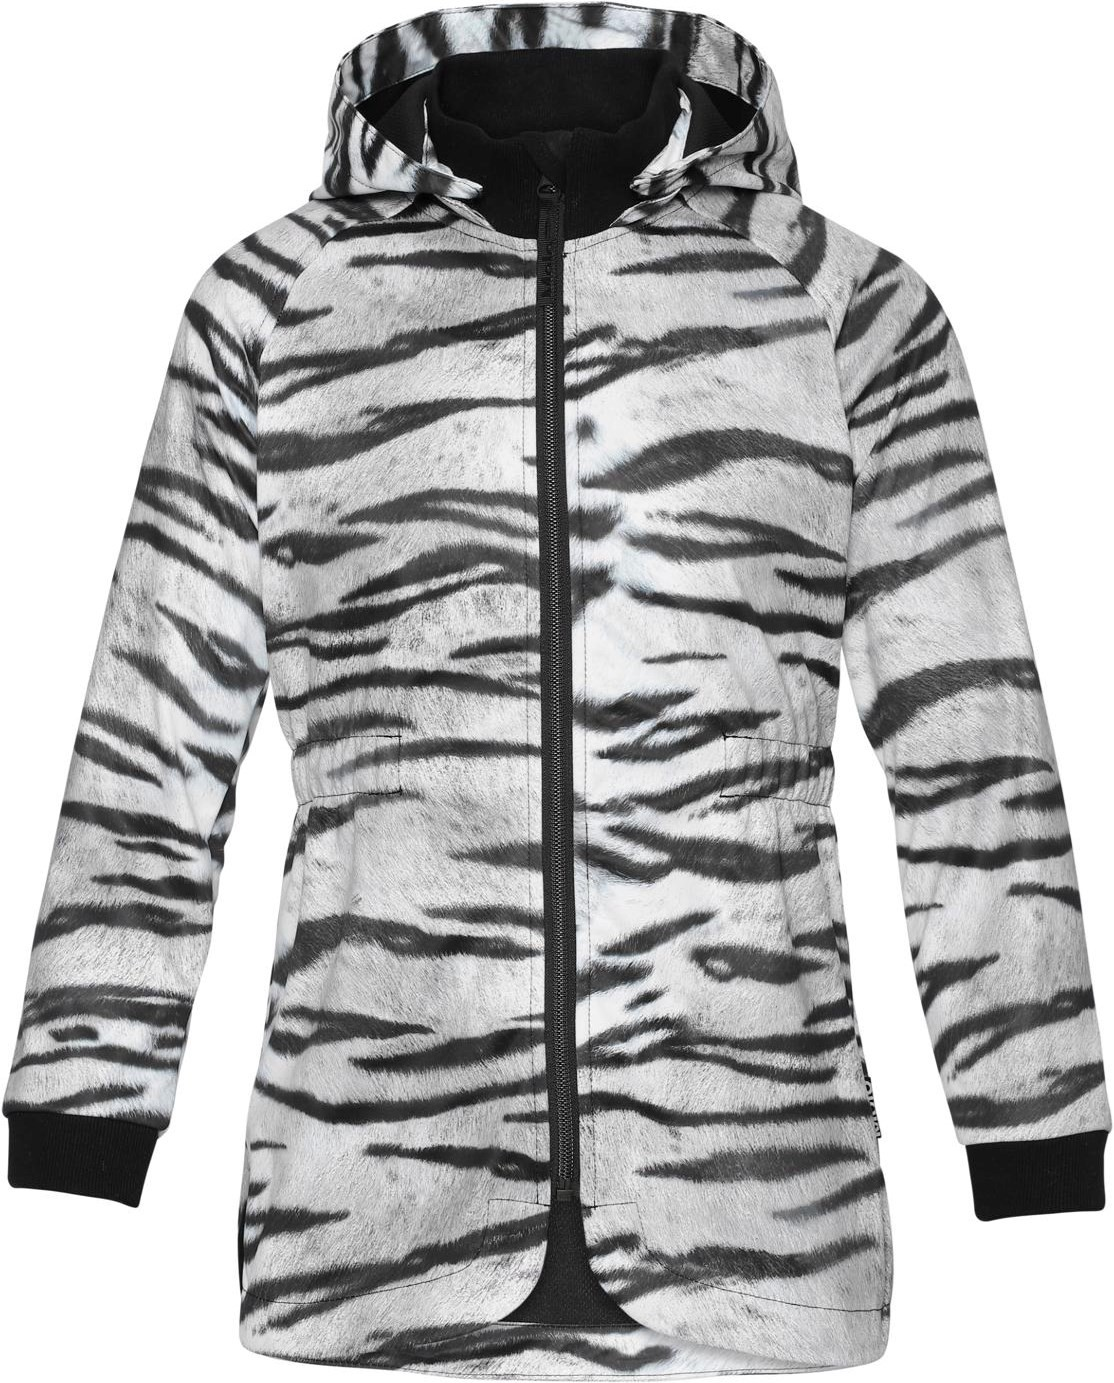 Softshell Jacket in White and Black Tiger Print